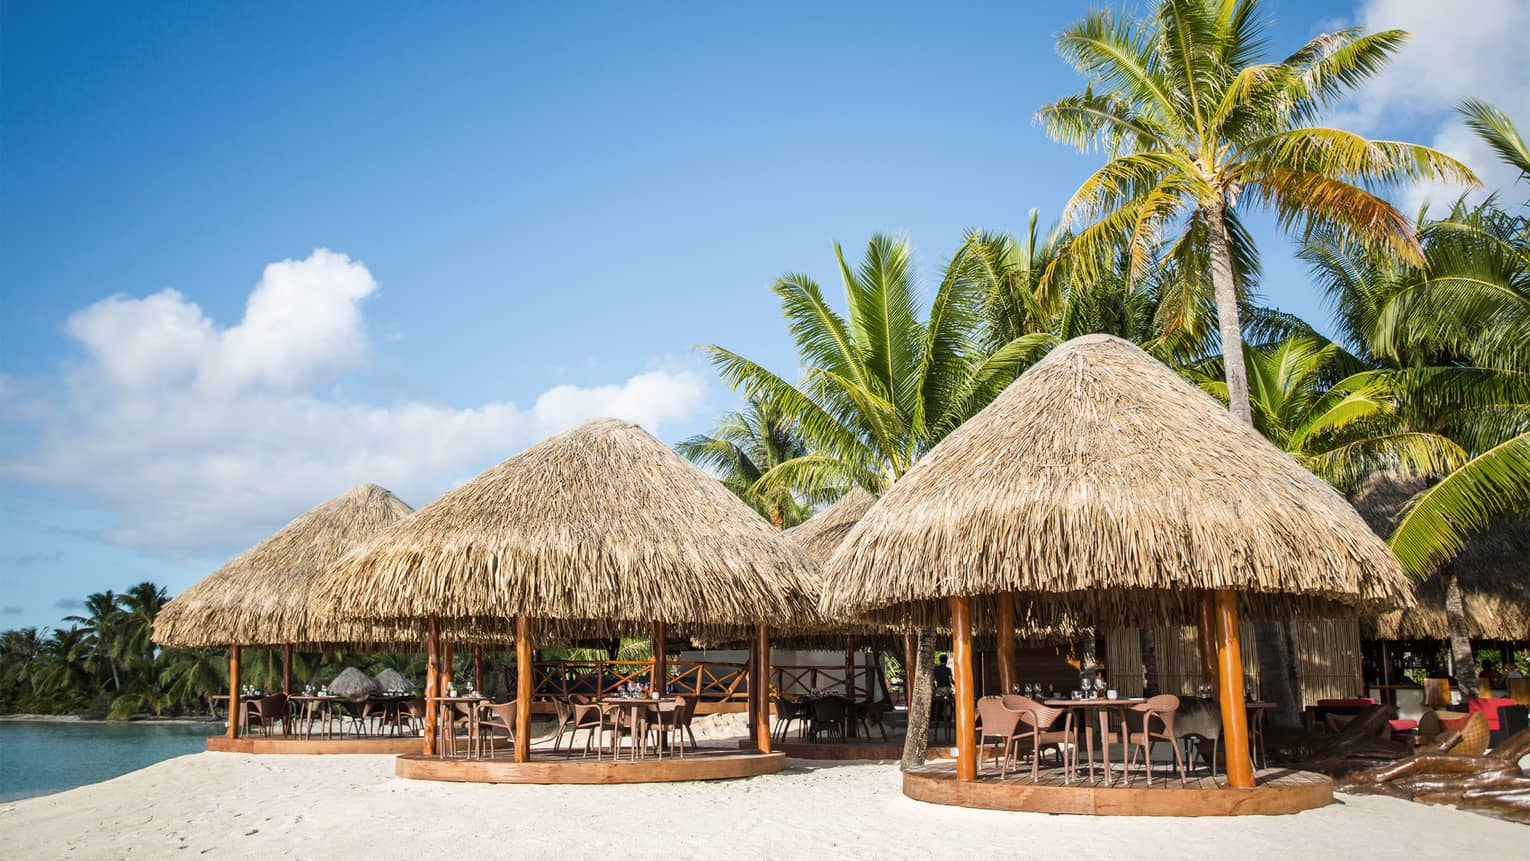 Three round beach huts with dining tables on white sand beach near water